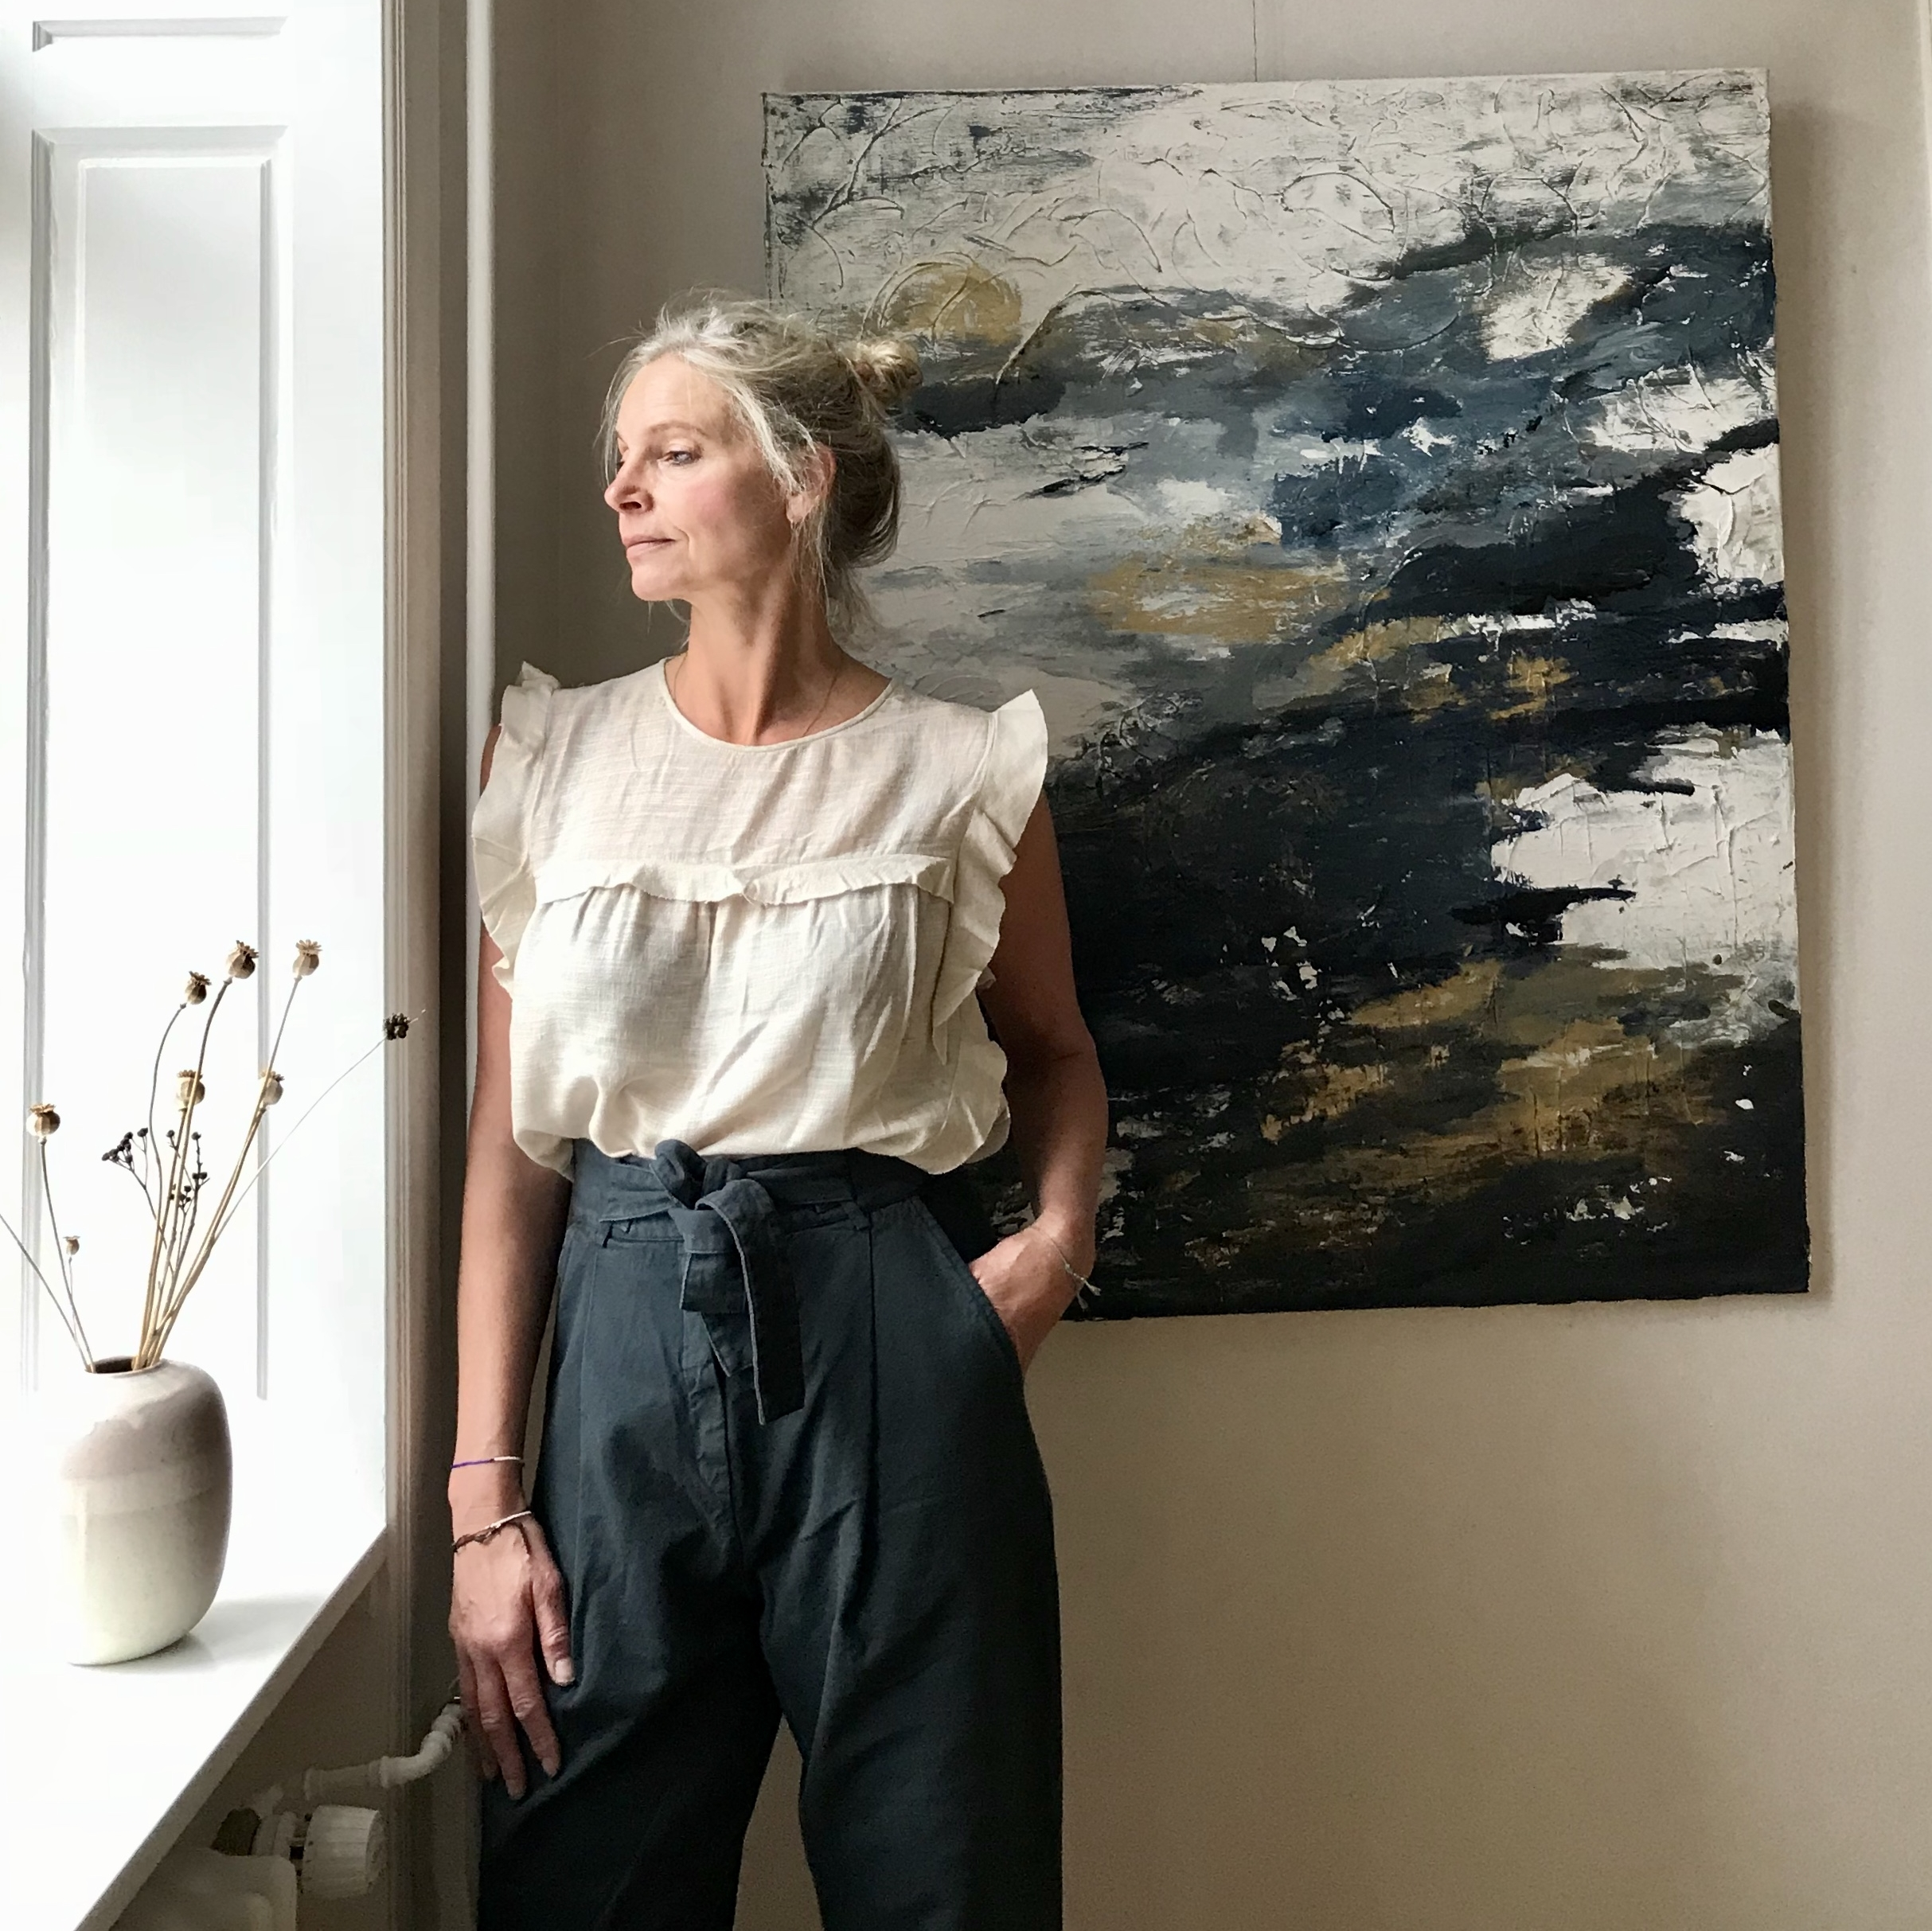 - I'm Irene de Klerk Wolters, mother and painter. Living with my Dutch family in Copenhagen, Denmark. With great passion and inspired by my family, our Nordic home & our travels I paint and photograph. I truly hope to inspire others with my work.